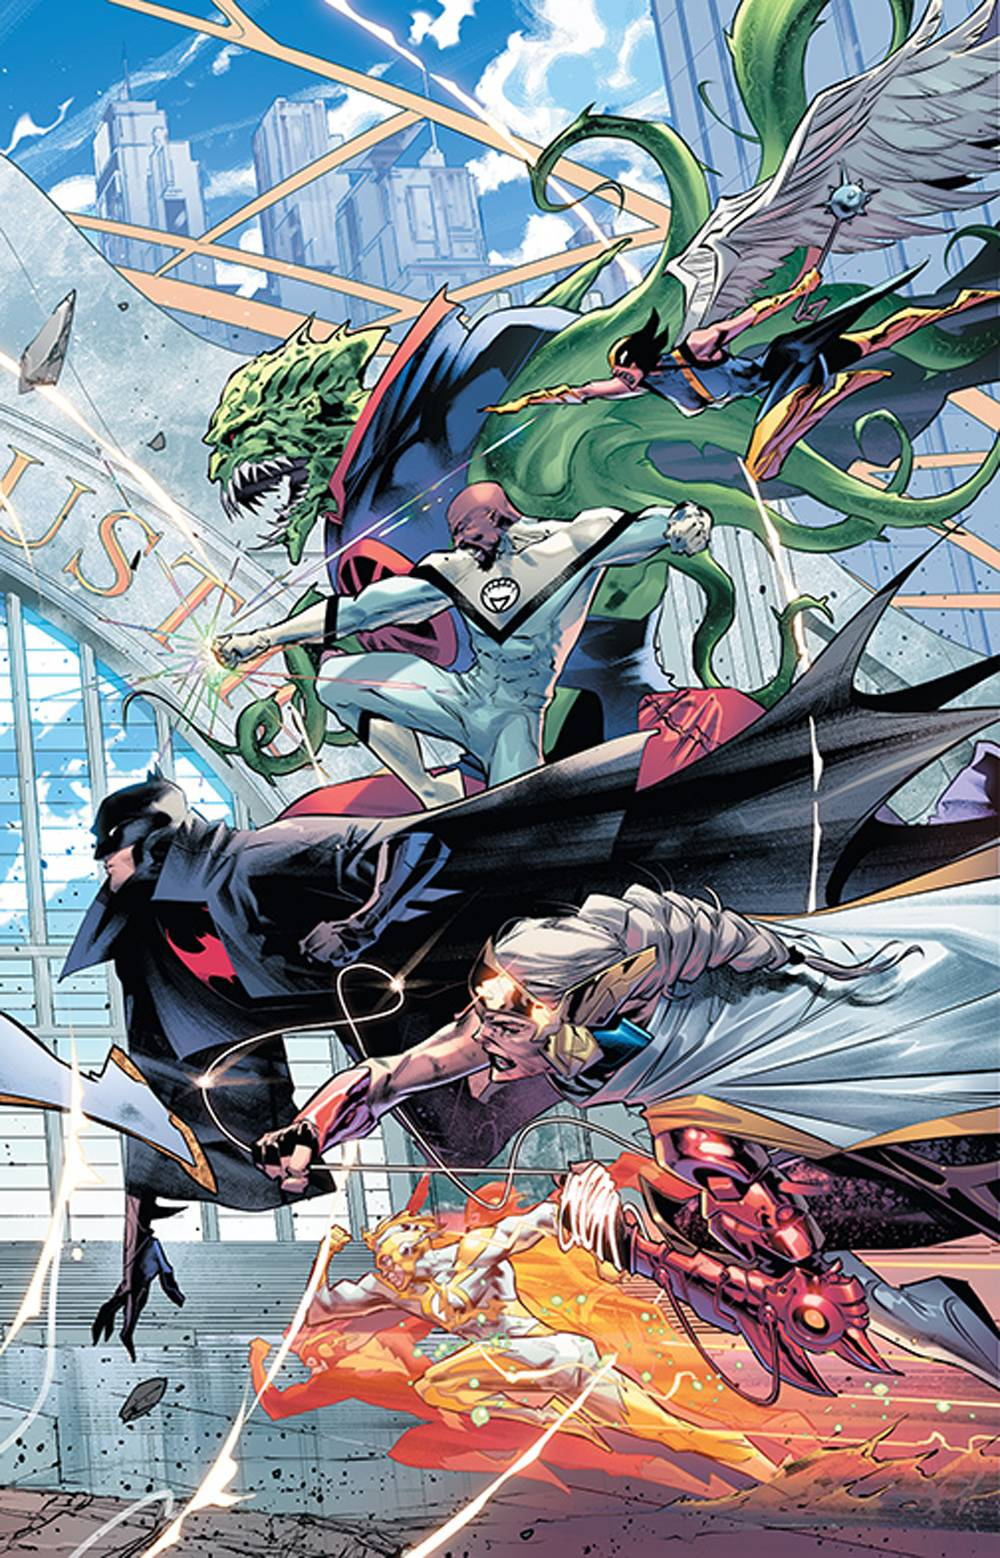 743904_justice-league-20-variant-cover JUSTICE LEAGUE #20 to feature a triptych of Jorge Jimenez covers